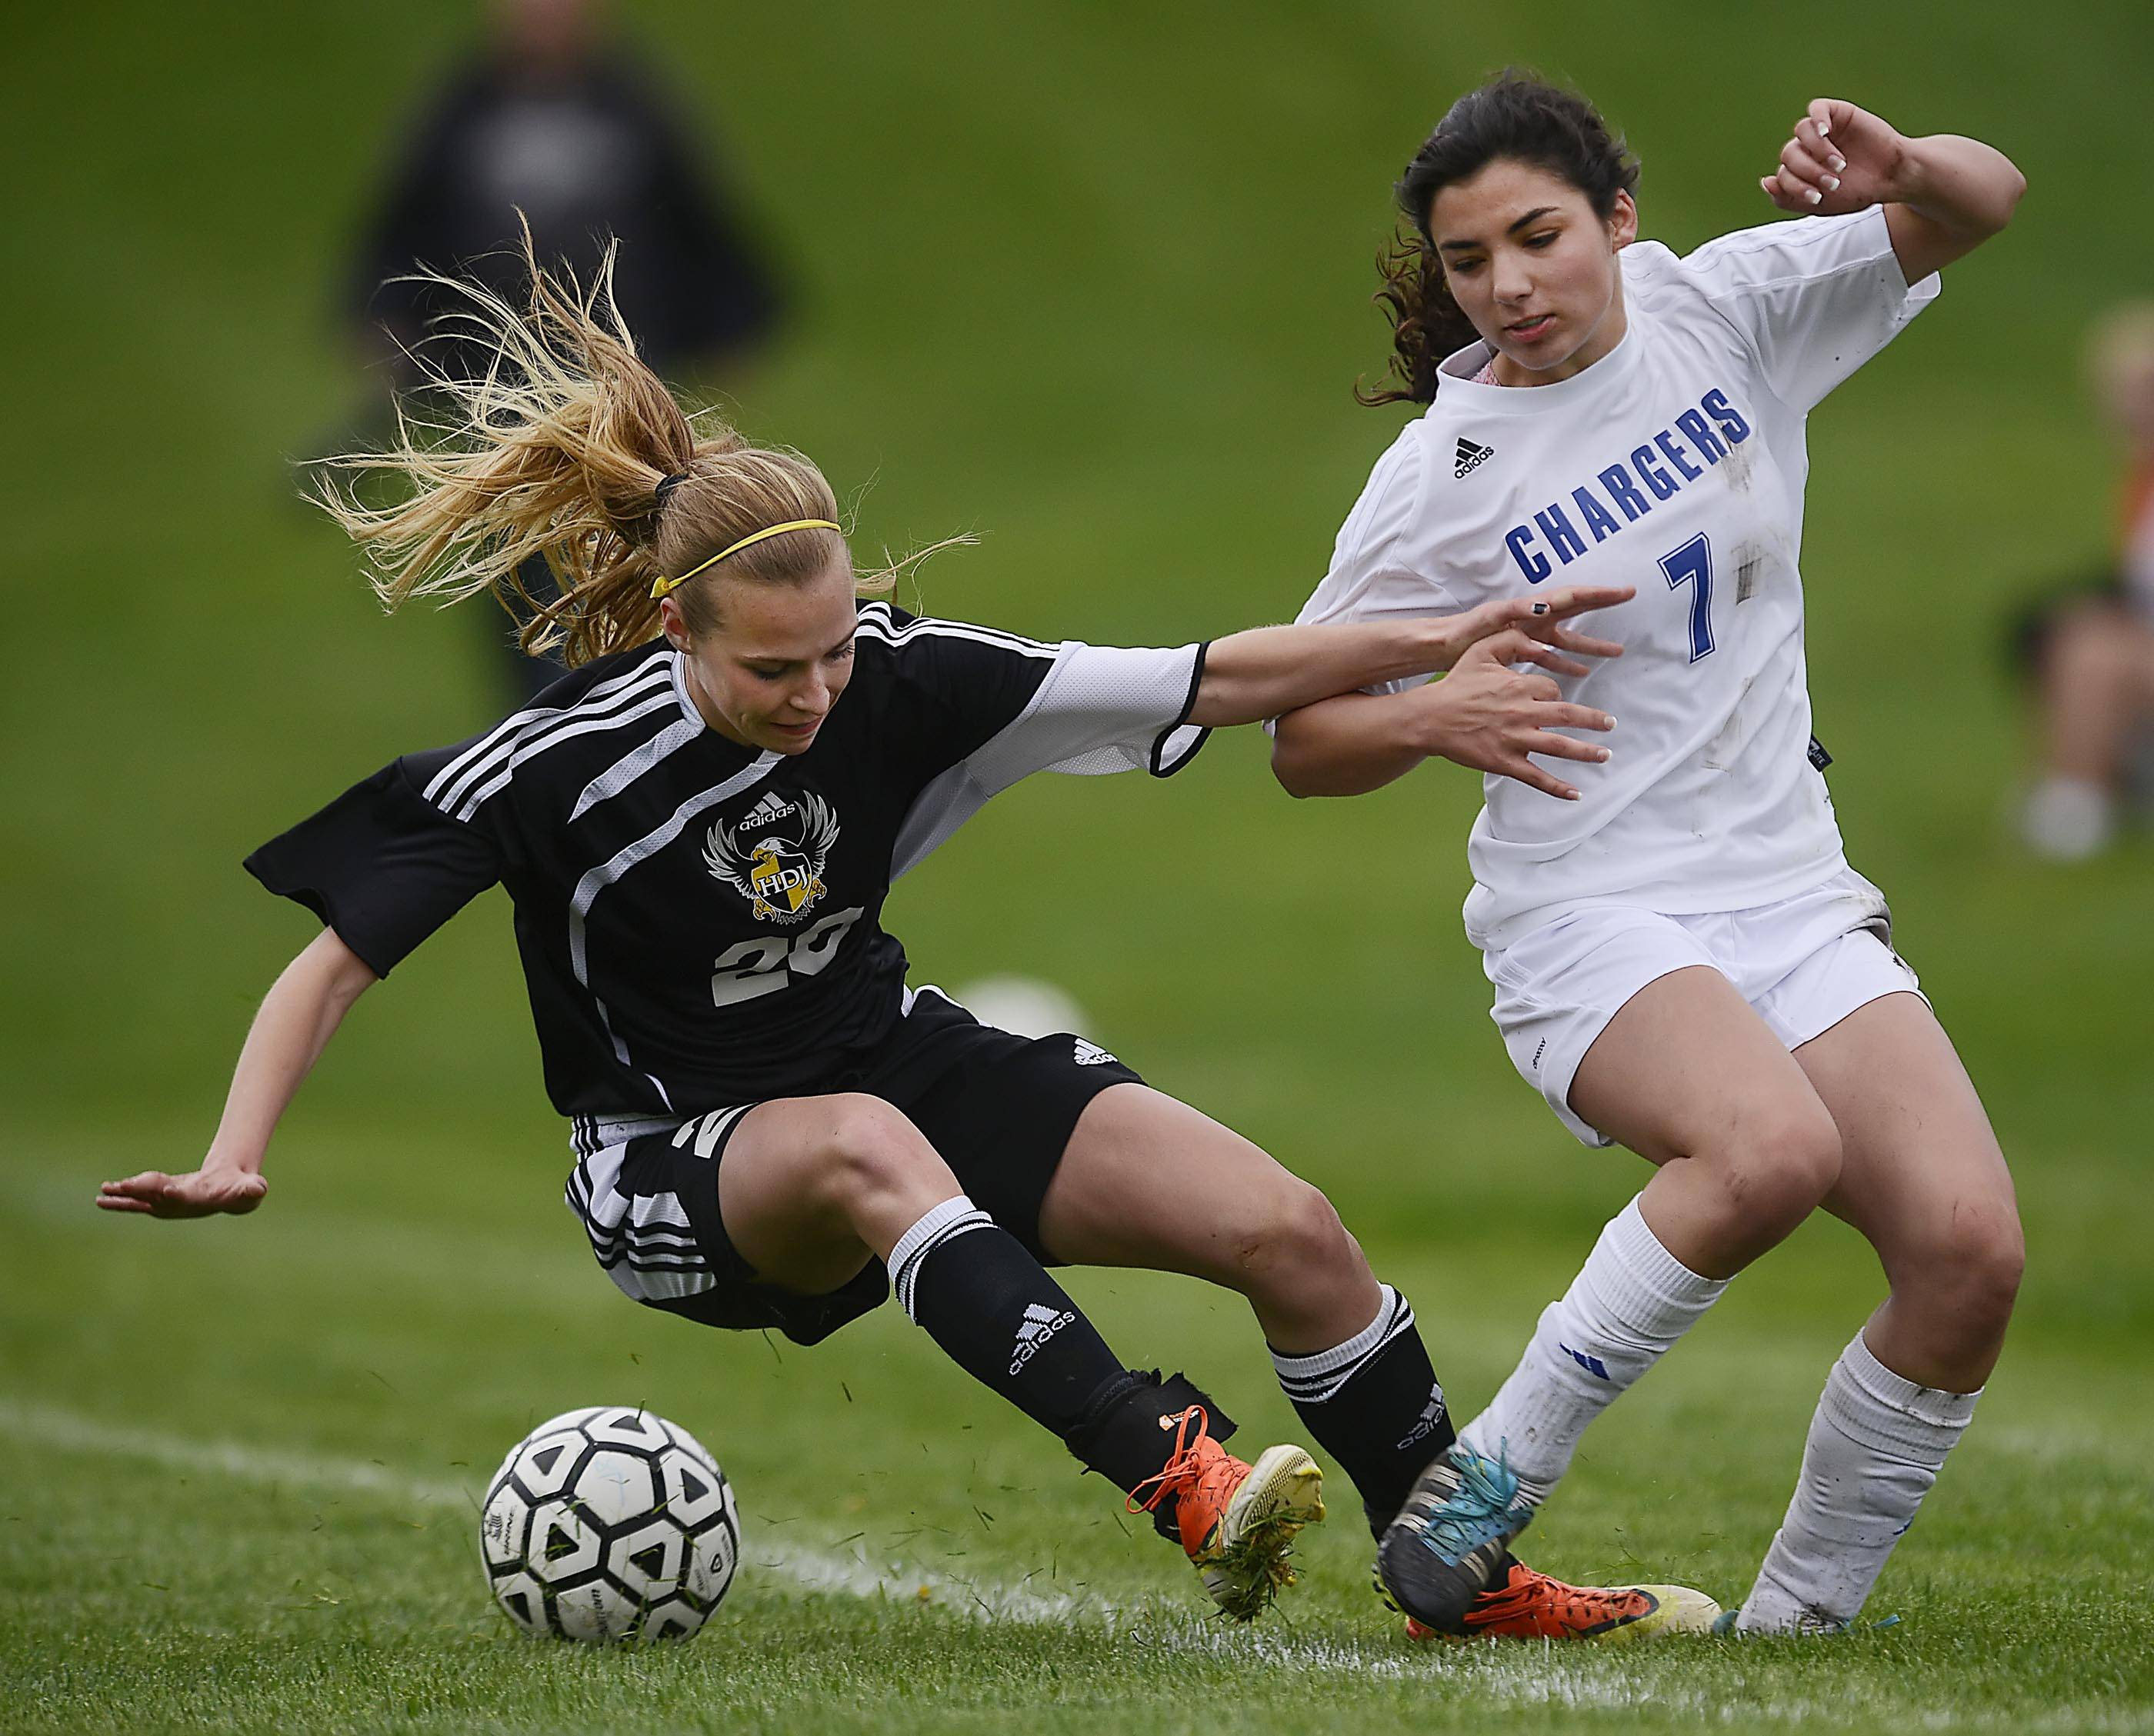 Jacobs' Heather Hoffmann falls to the turf after colliding with Dundee-Crown's Franki Scarpelli.